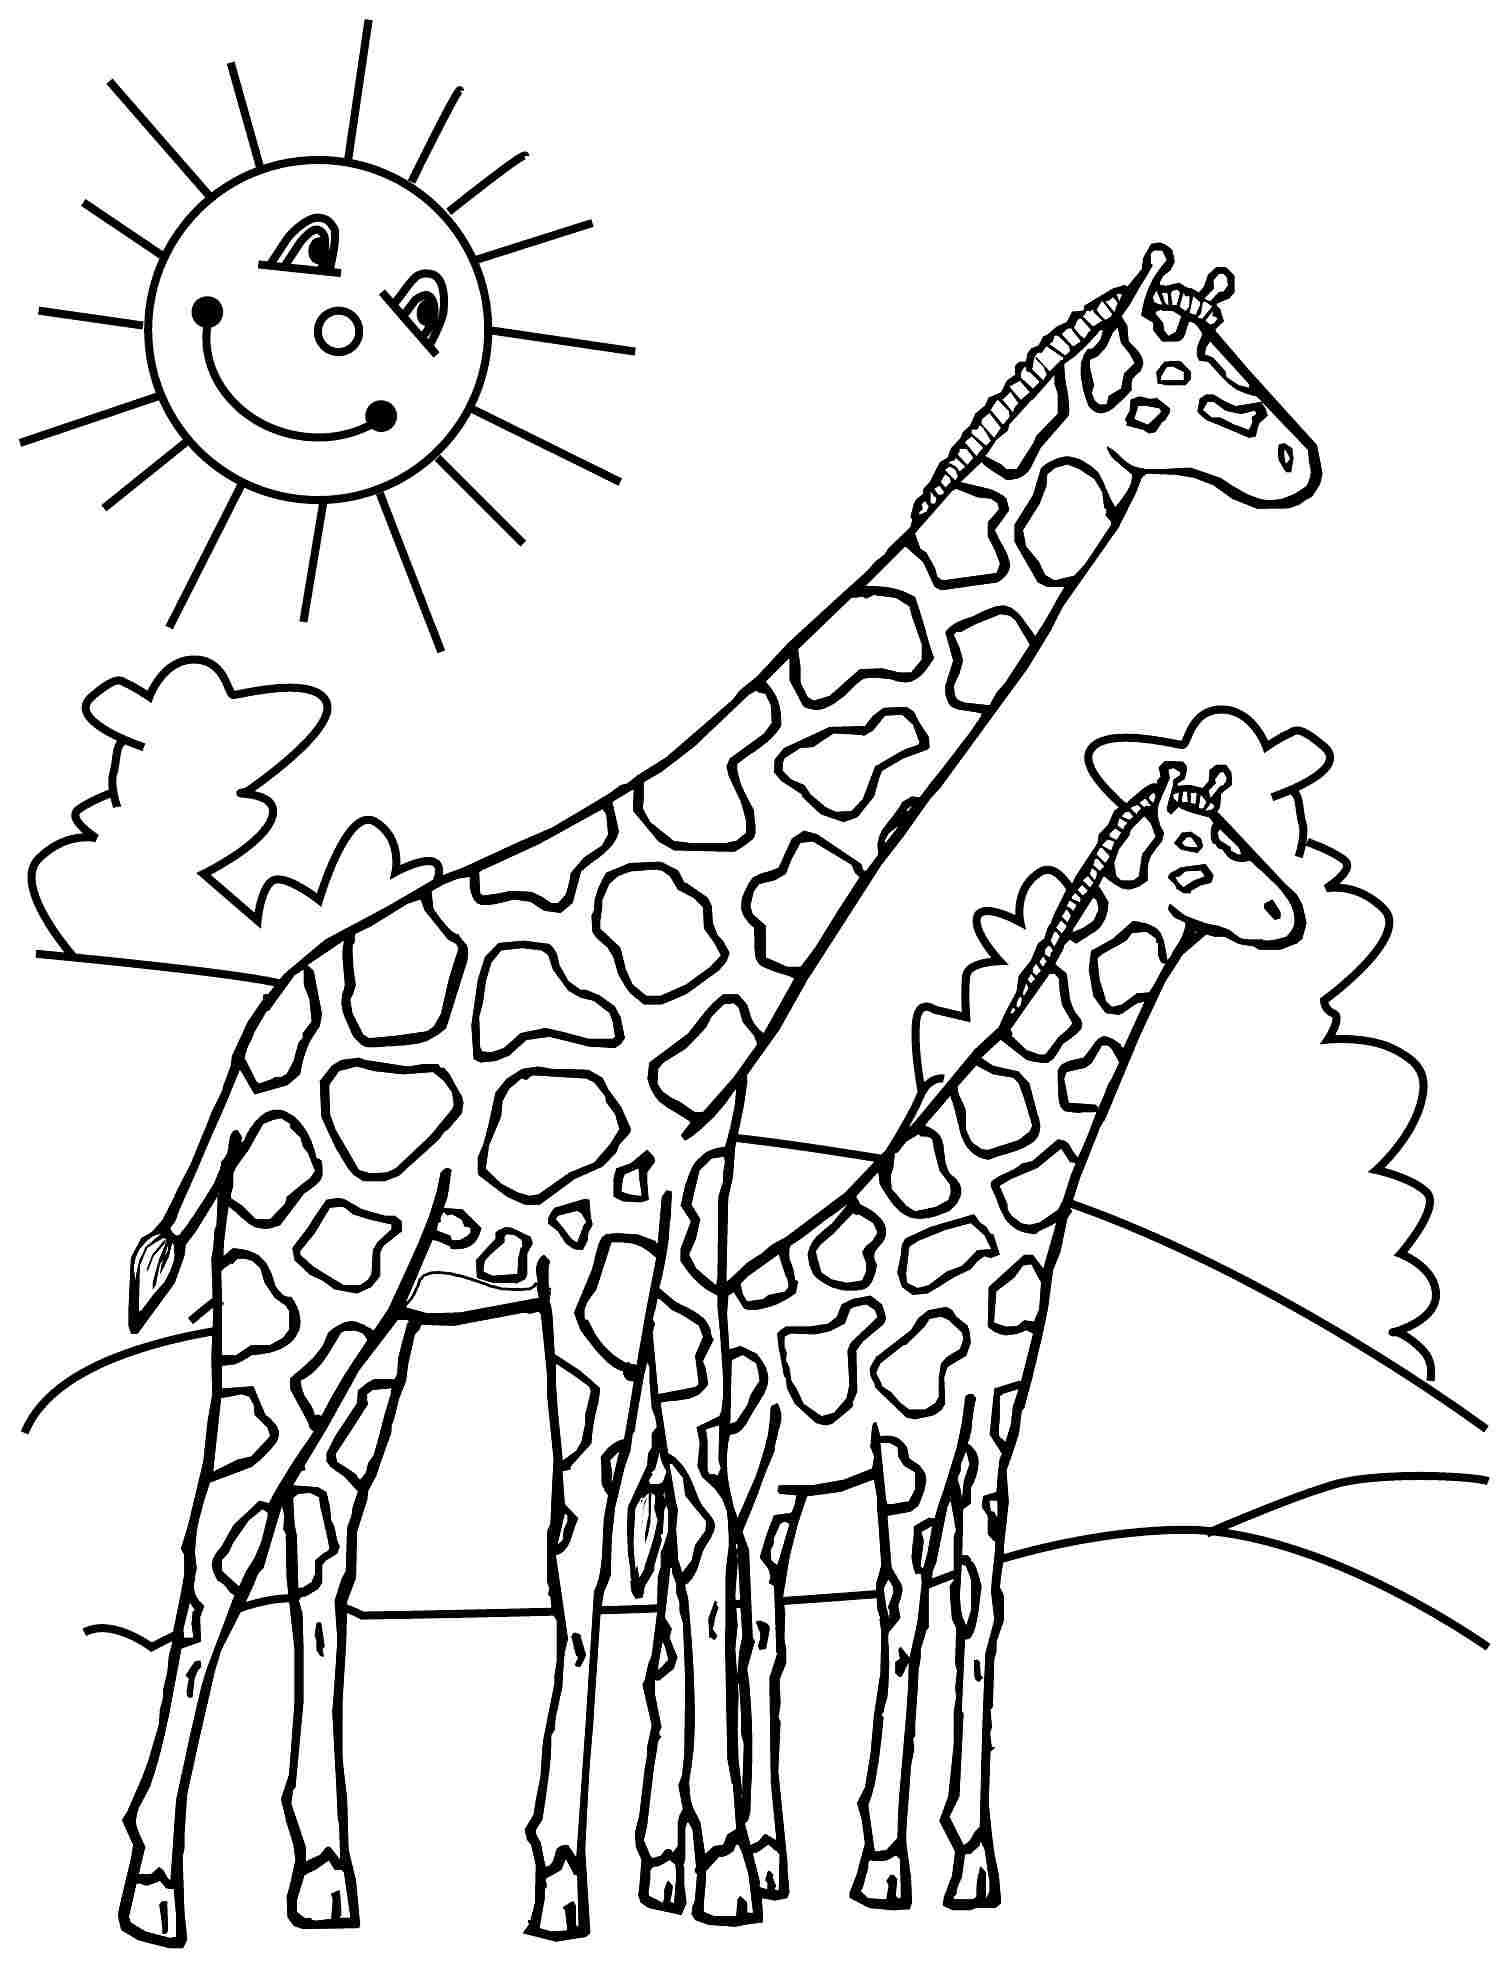 coloring pages of free printable peacock coloring pages for kids of coloring pages